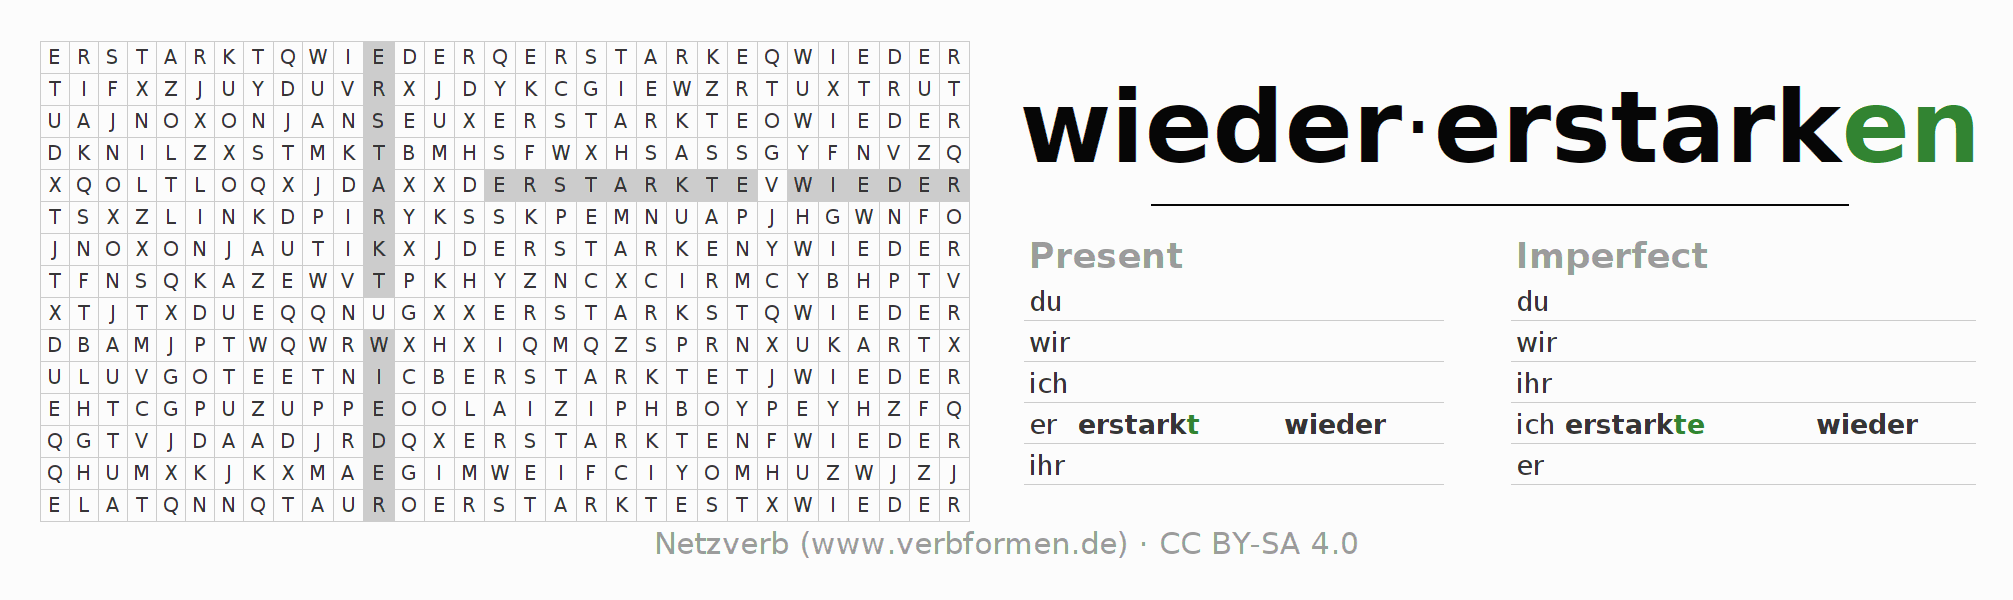 Word search puzzle for the conjugation of the verb wiedererstarken